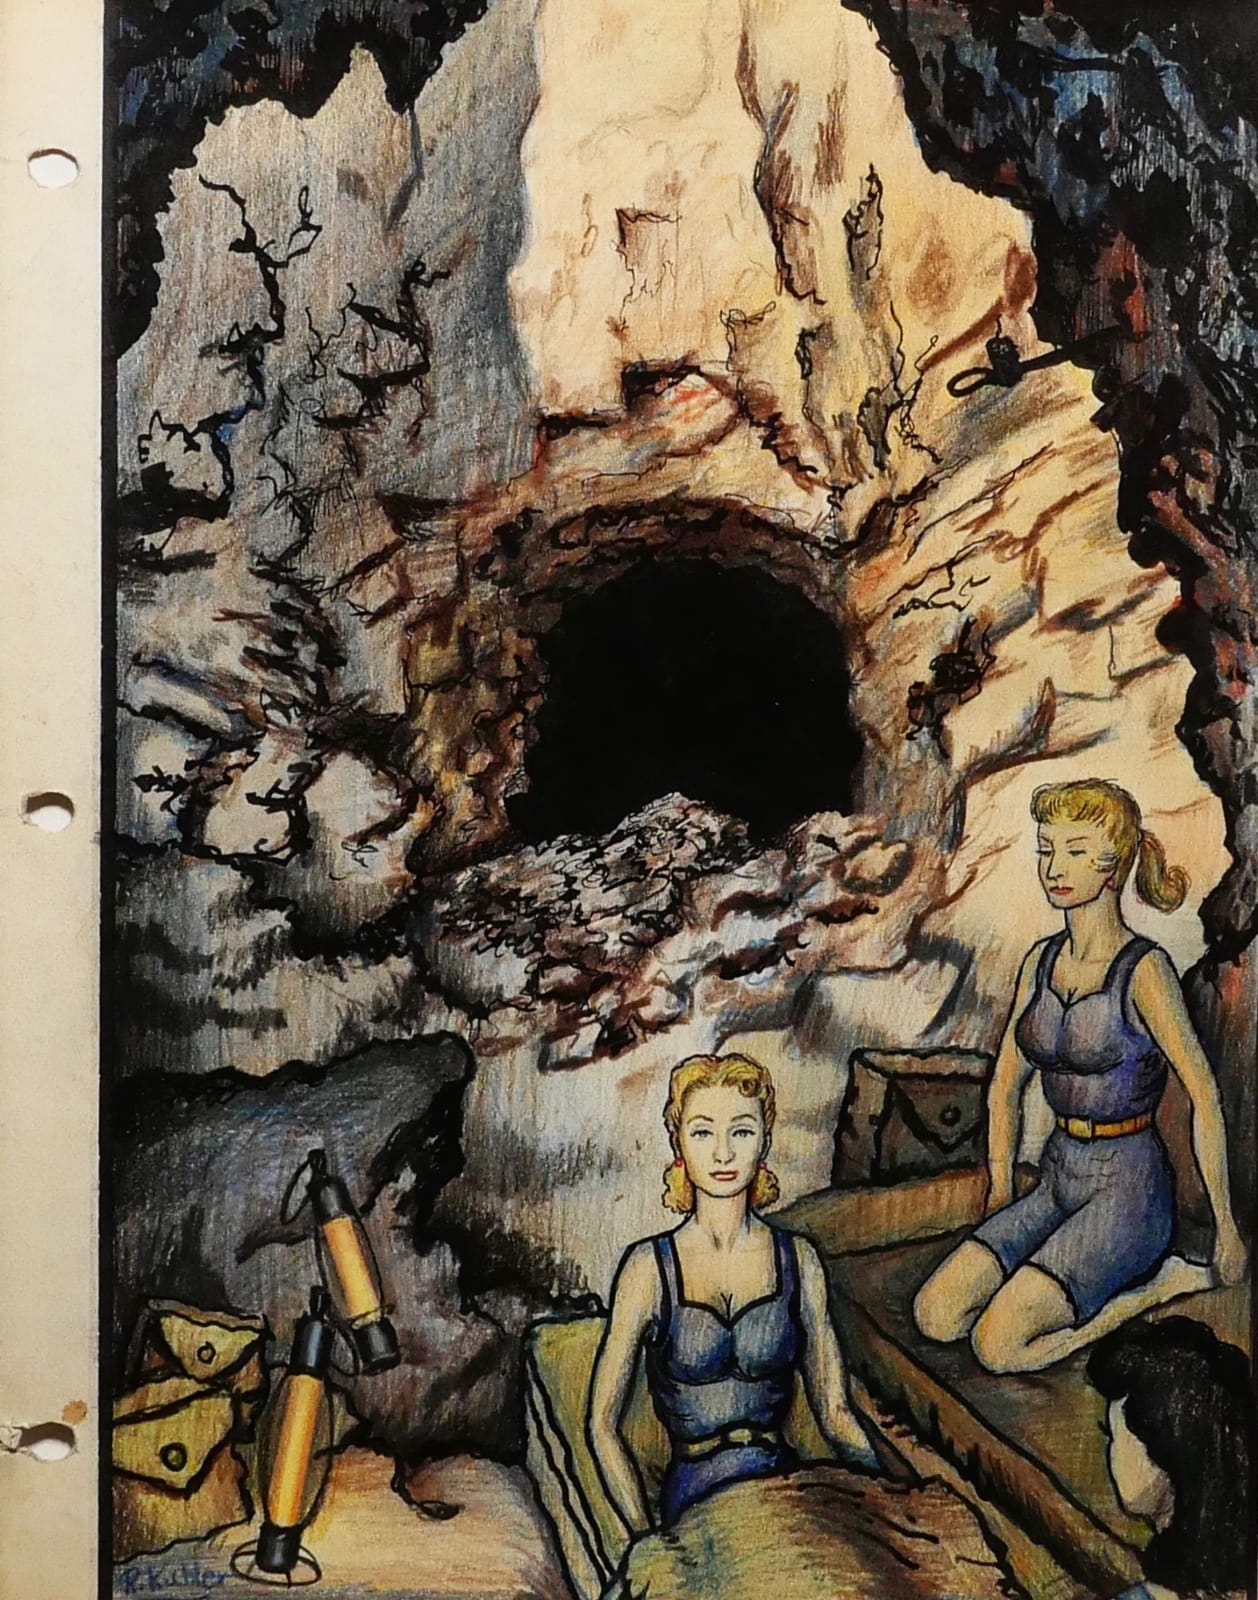 Arlene Dalherson & Lisa Smörgesholm camping in abandoned mine, 1960 Colored pencil on sketch paper 11 x 8 1/2 in. (RK 25) $7,000